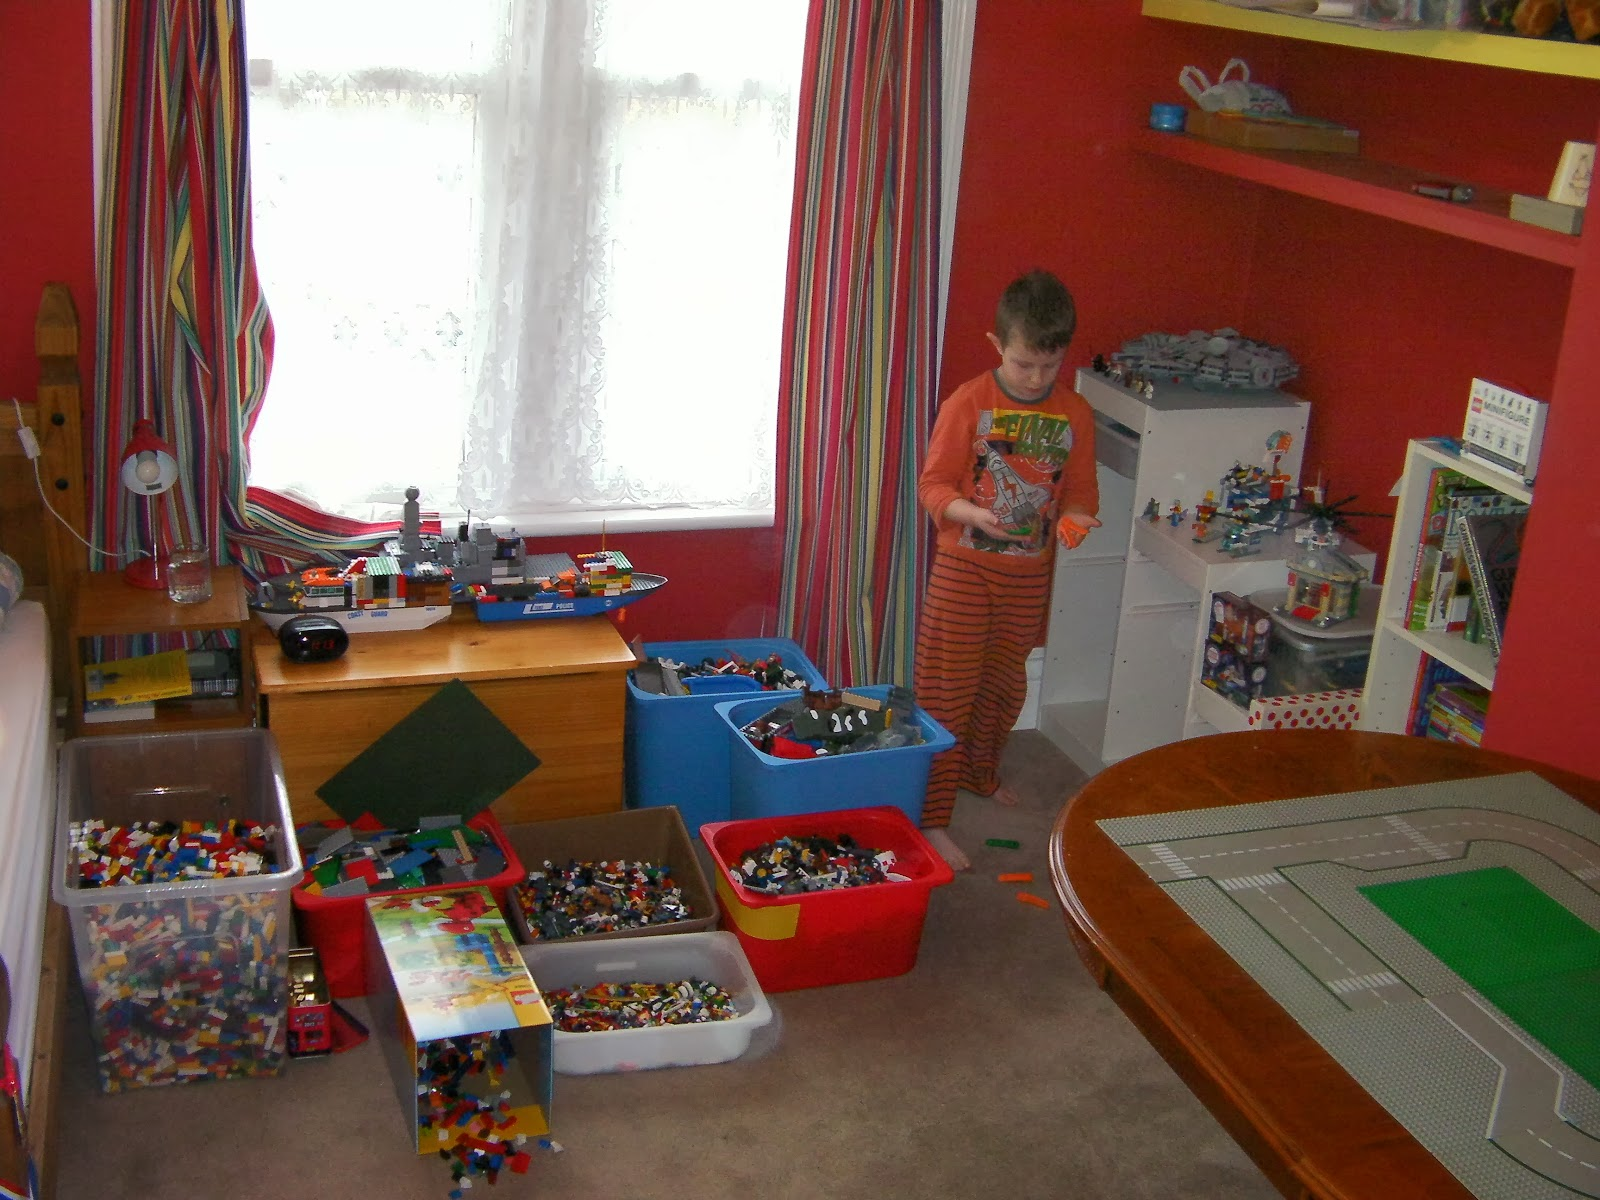 lego sorted into boxes of bricks and shapes with roadway glued to table